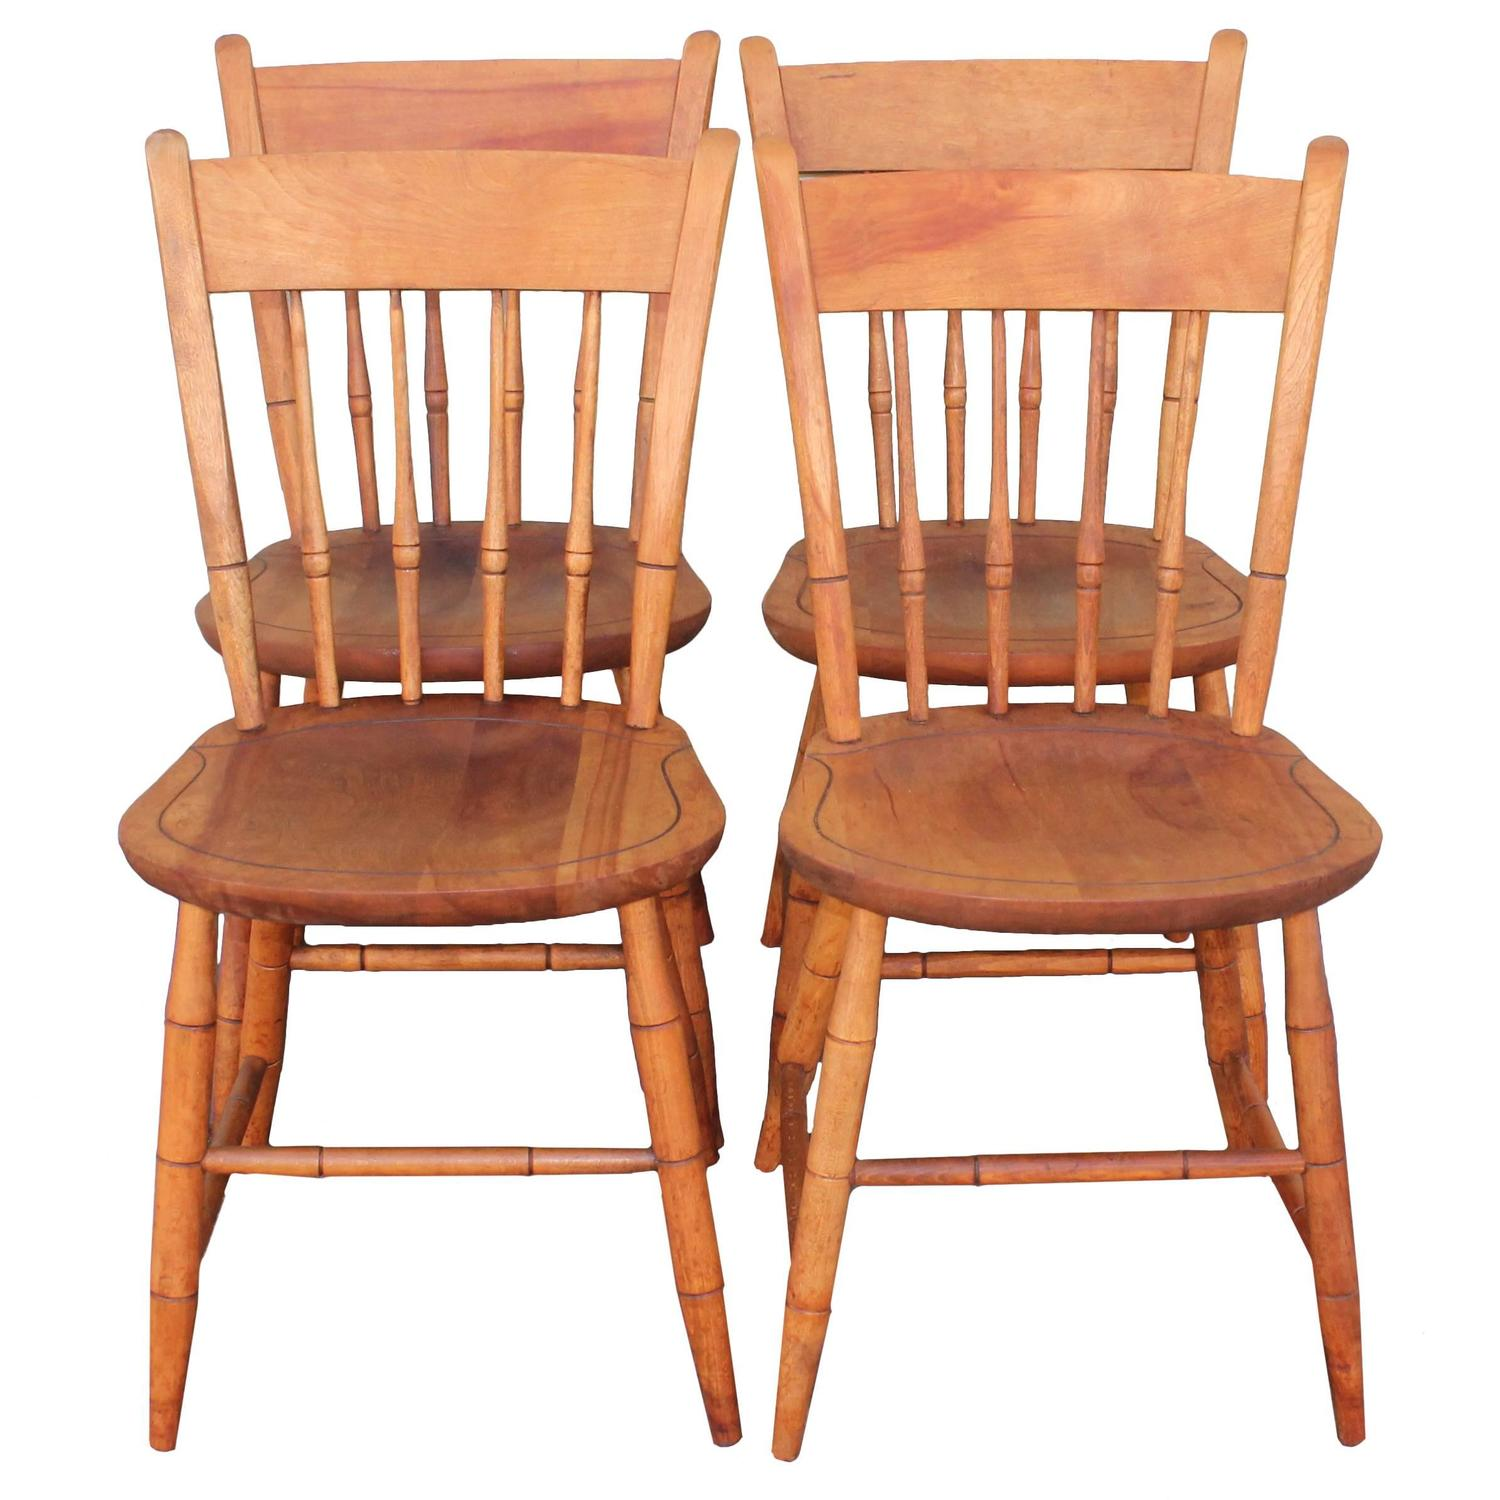 nichols and stone dining chairs french country chair cushions signed thumb back windsor set